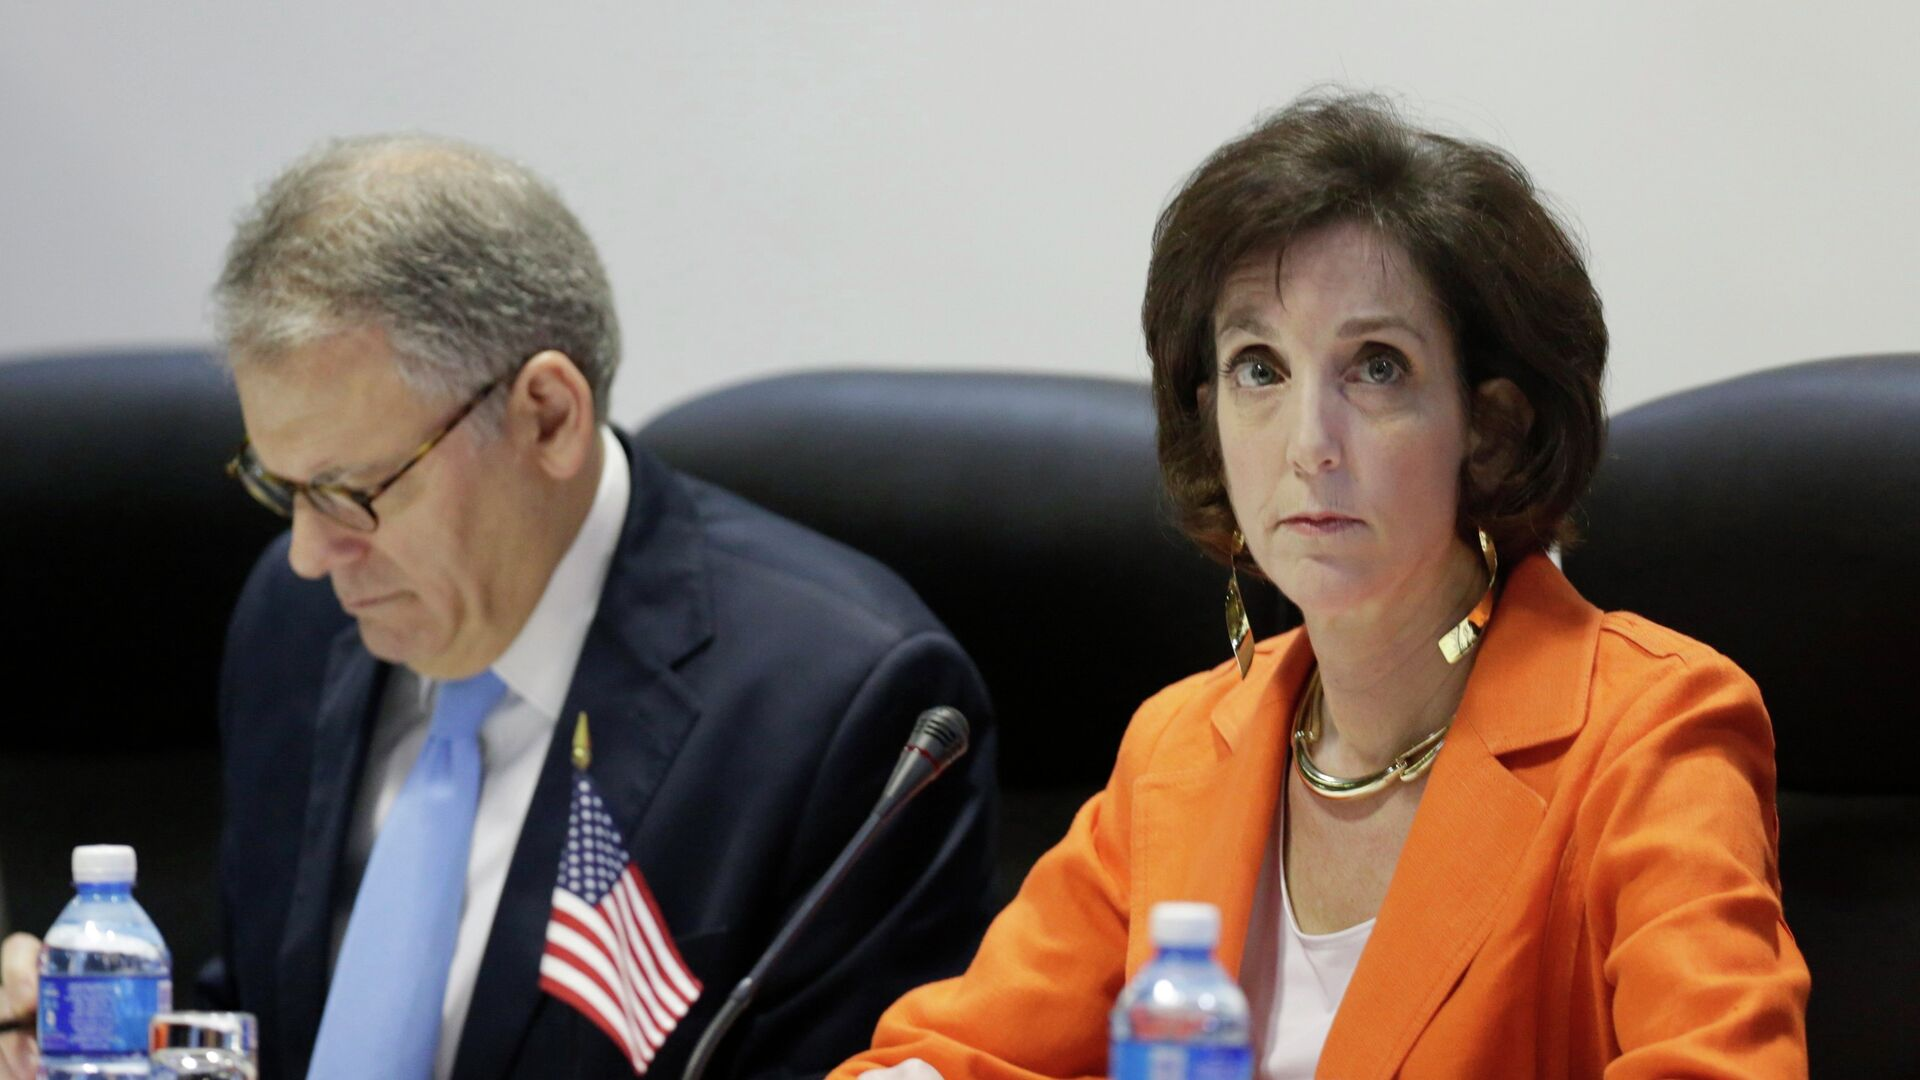 U.S. Assistant Secretary for Western Hemisphere Affairs Roberta Jacobson (R) and Chief of Mission at the U.S. Interests Section in Havana Jeffrey DeLaurentis attend negotiations to restore diplomatic ties with Cuba in Havana January 22, 2015. - Sputnik Mundo, 1920, 17.04.2021